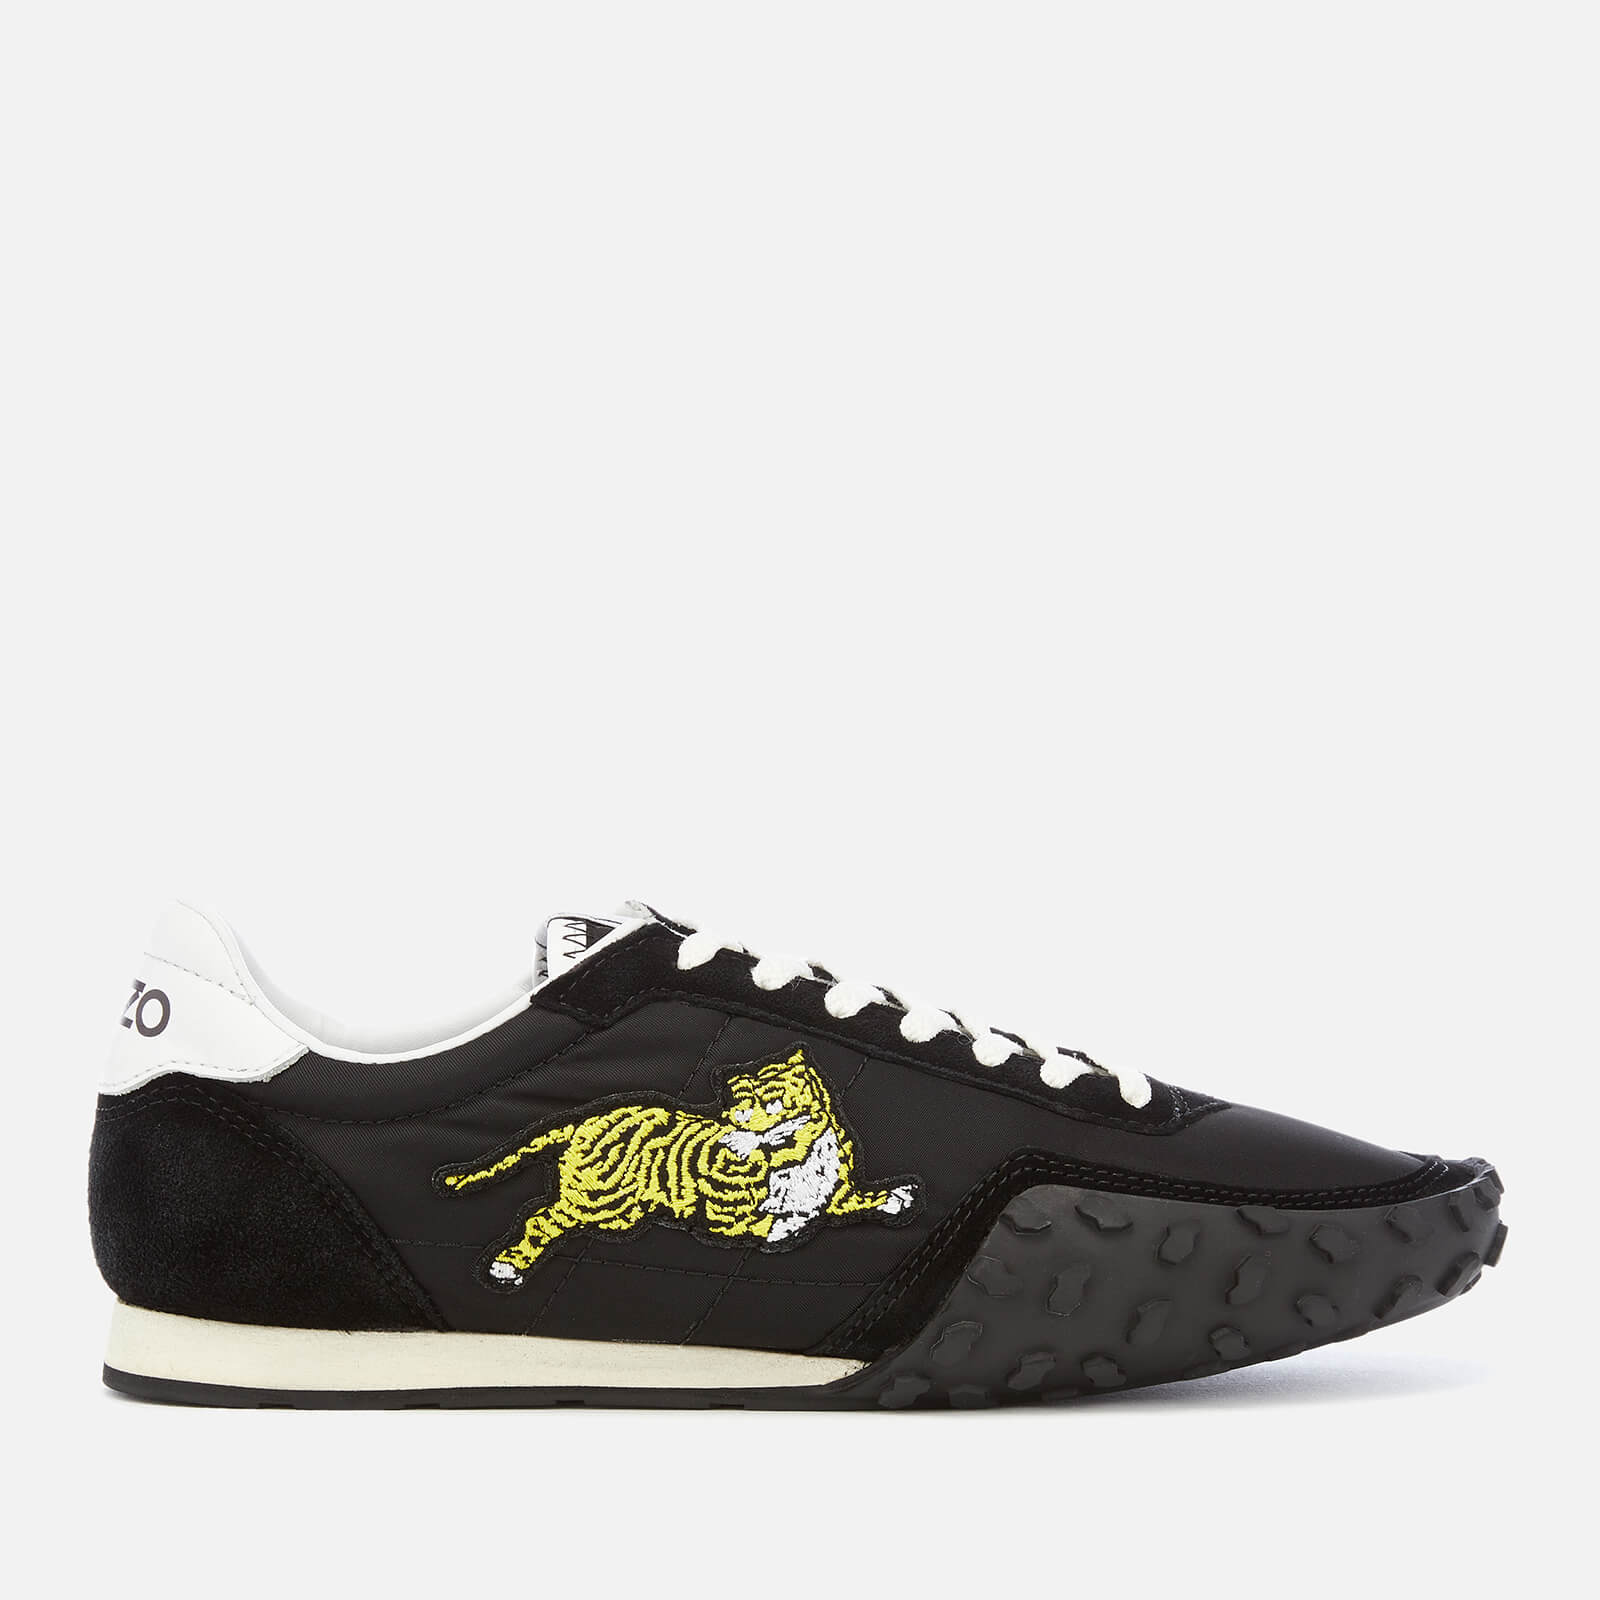 bf484546 KENZO Women's Move Trainers - Black - Free UK Delivery over £50